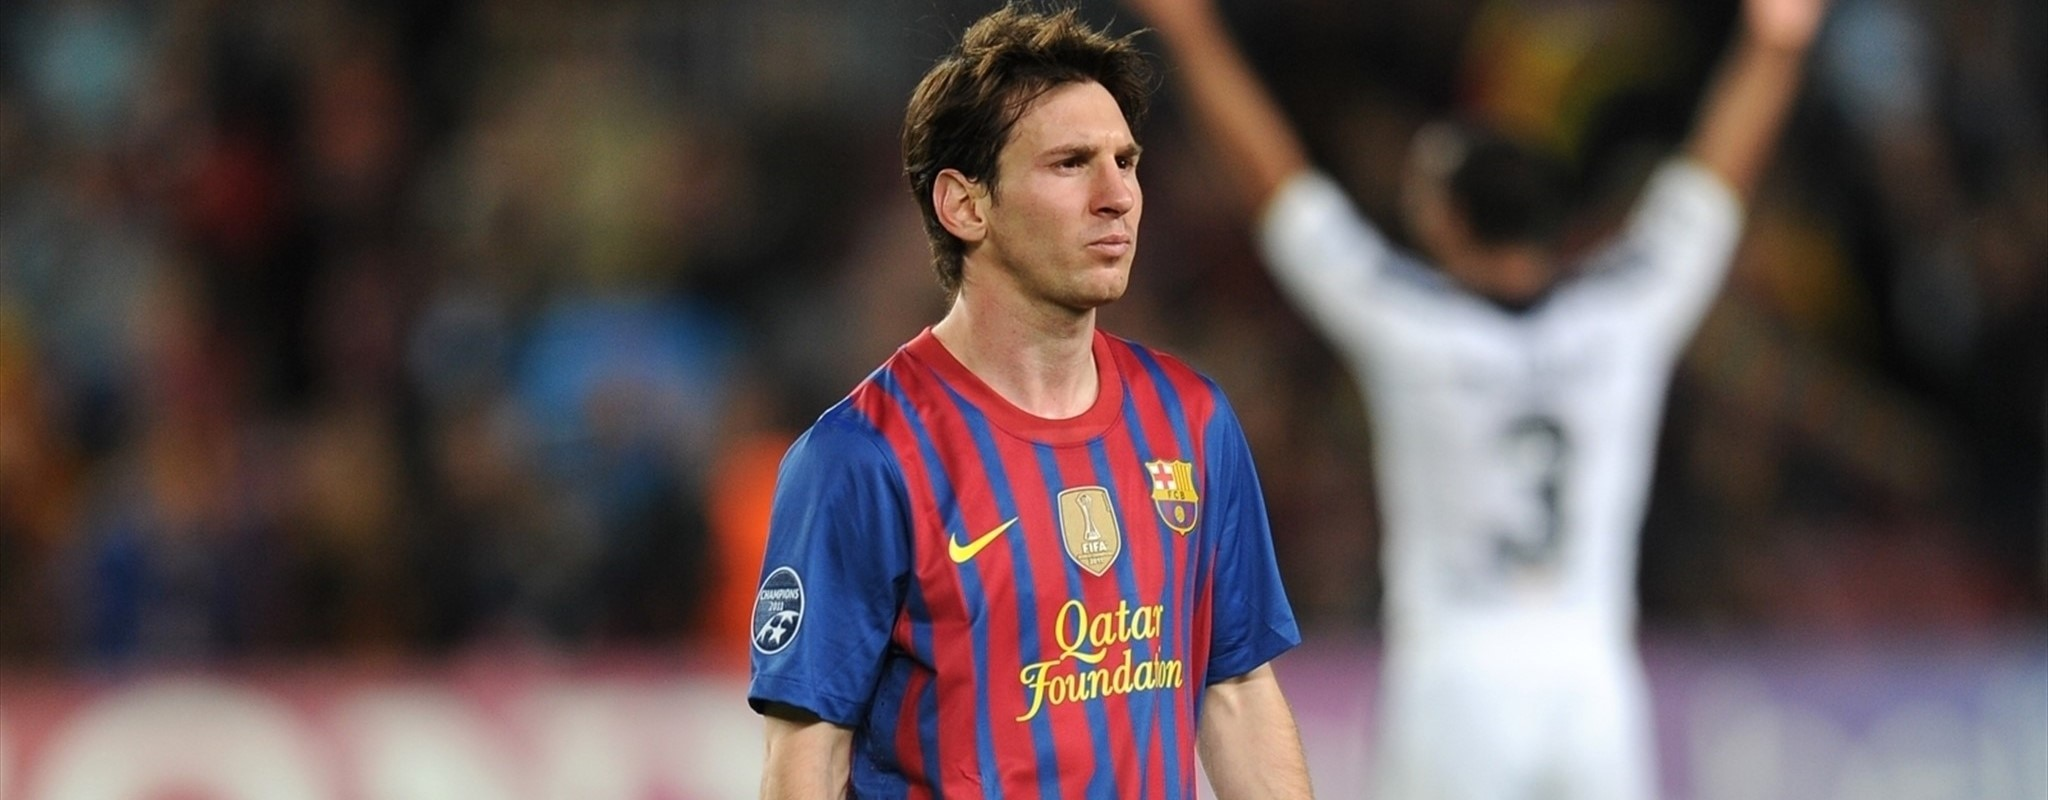 Who are Lionel Messi's best and worst opponents?